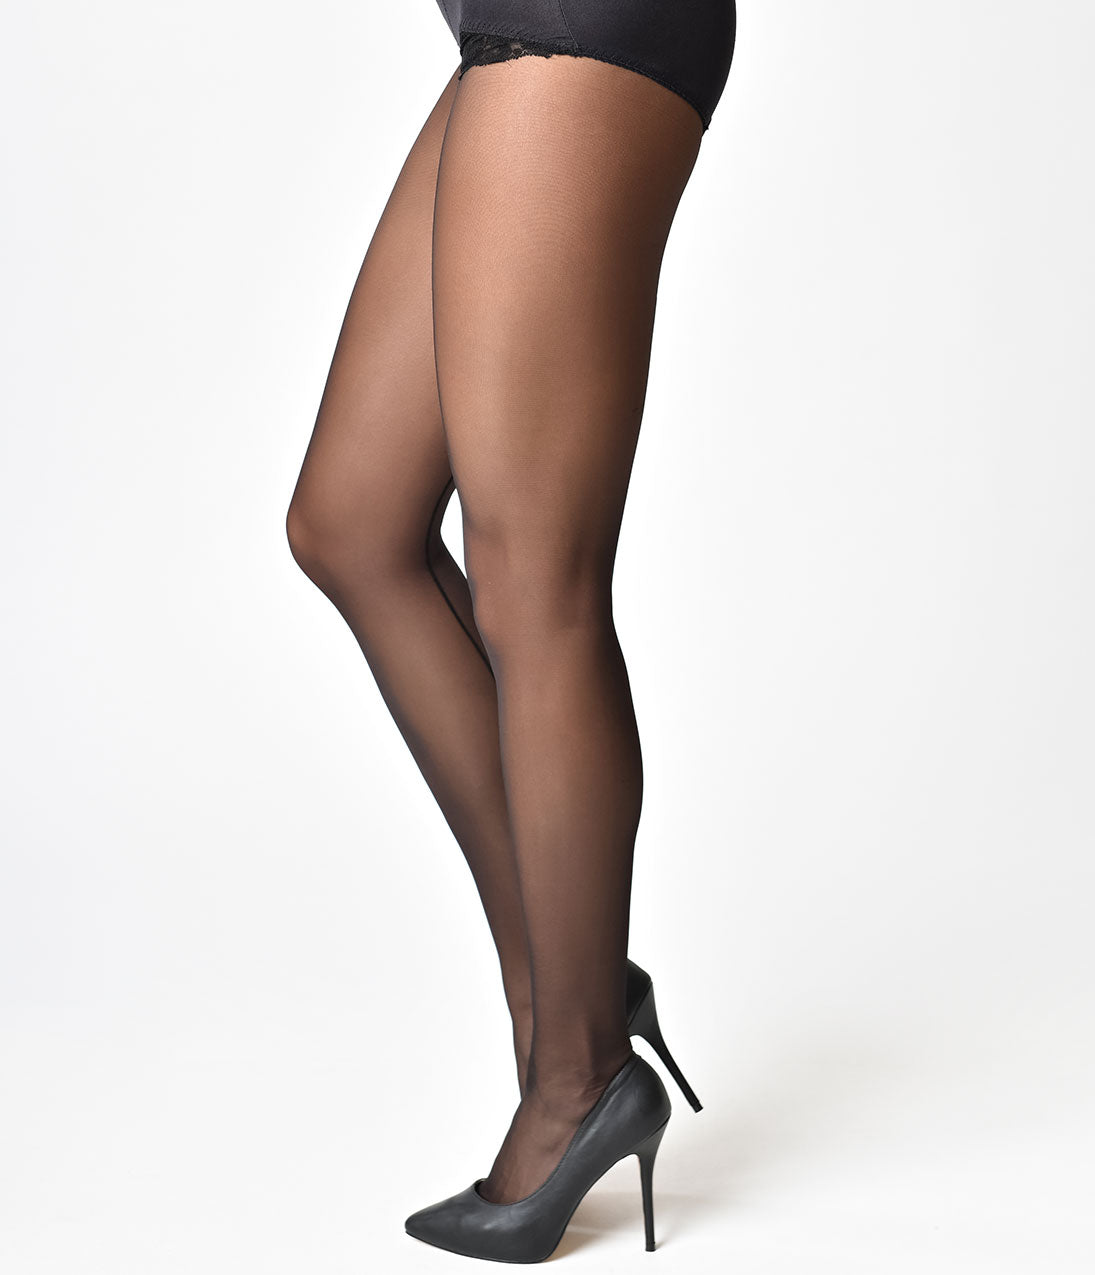 c4e1e12c1 What Katie Did Pin Up Style Nude   Black Backseam Pantyhose – Unique ...